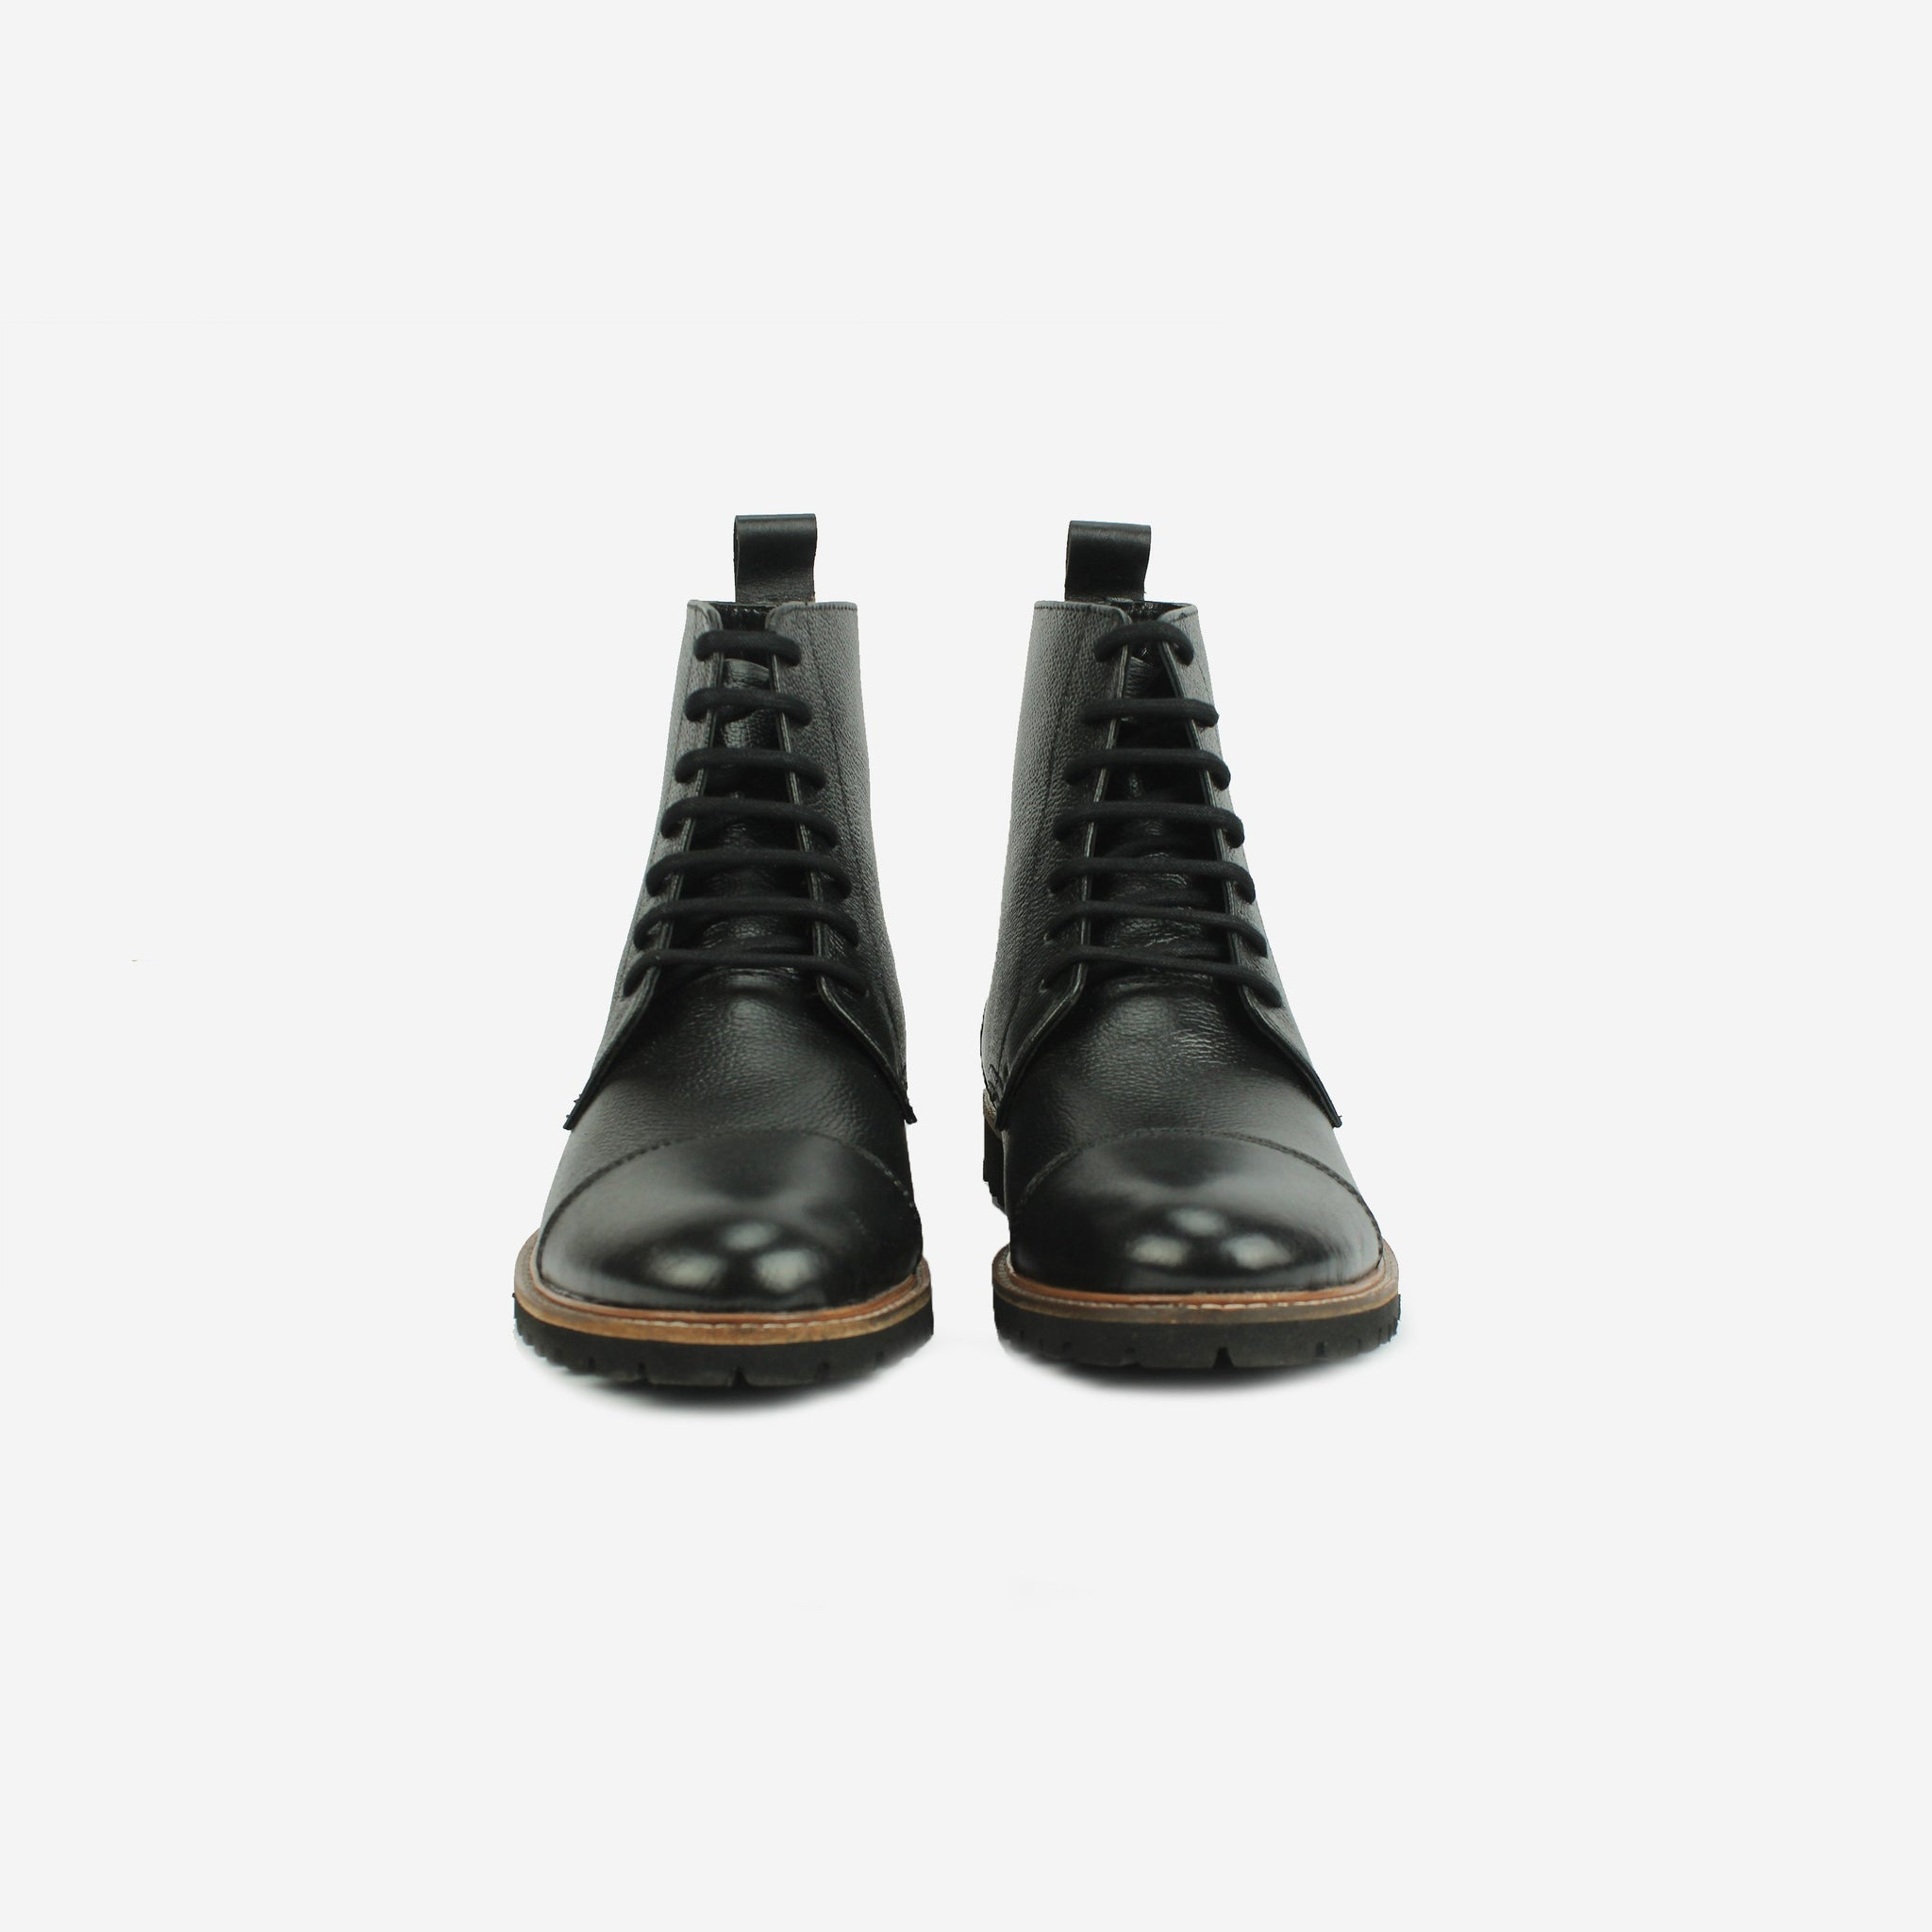 Oberon LaceUp Boot Black Thebootsco